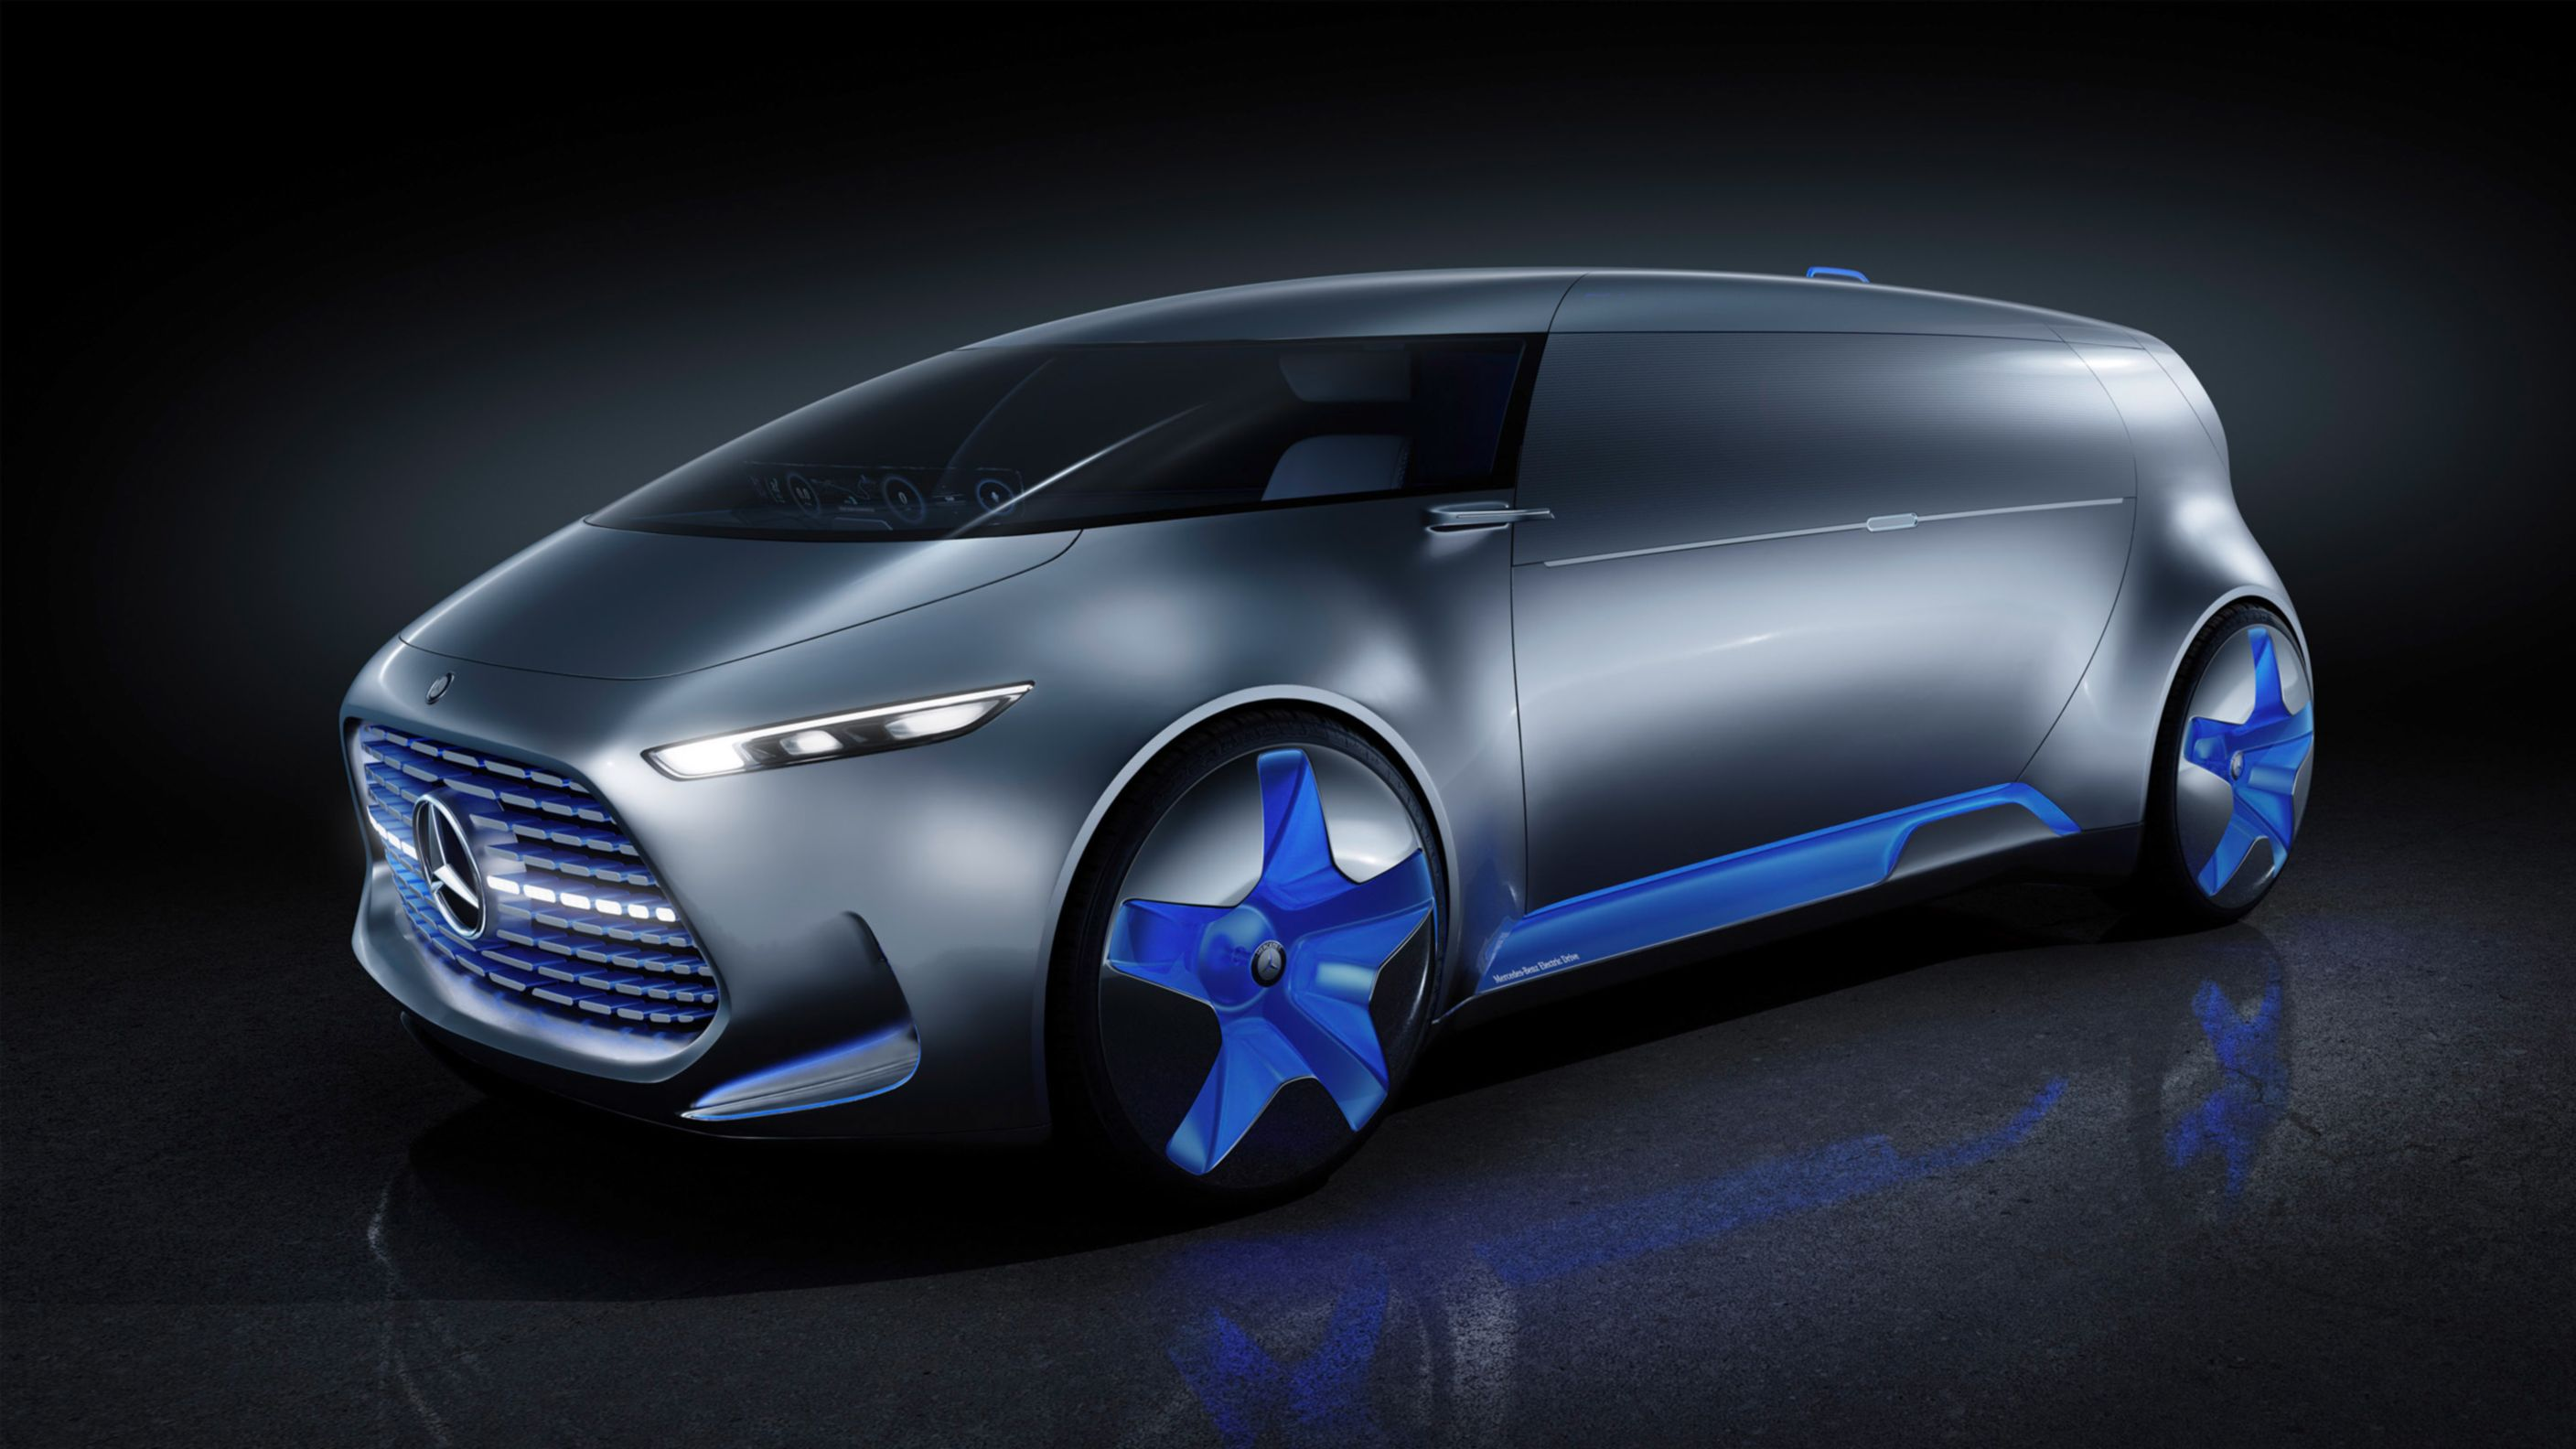 Download free HD Mercedes Benz Vision Tokyo Concept 2015 HD Wallpaper, image